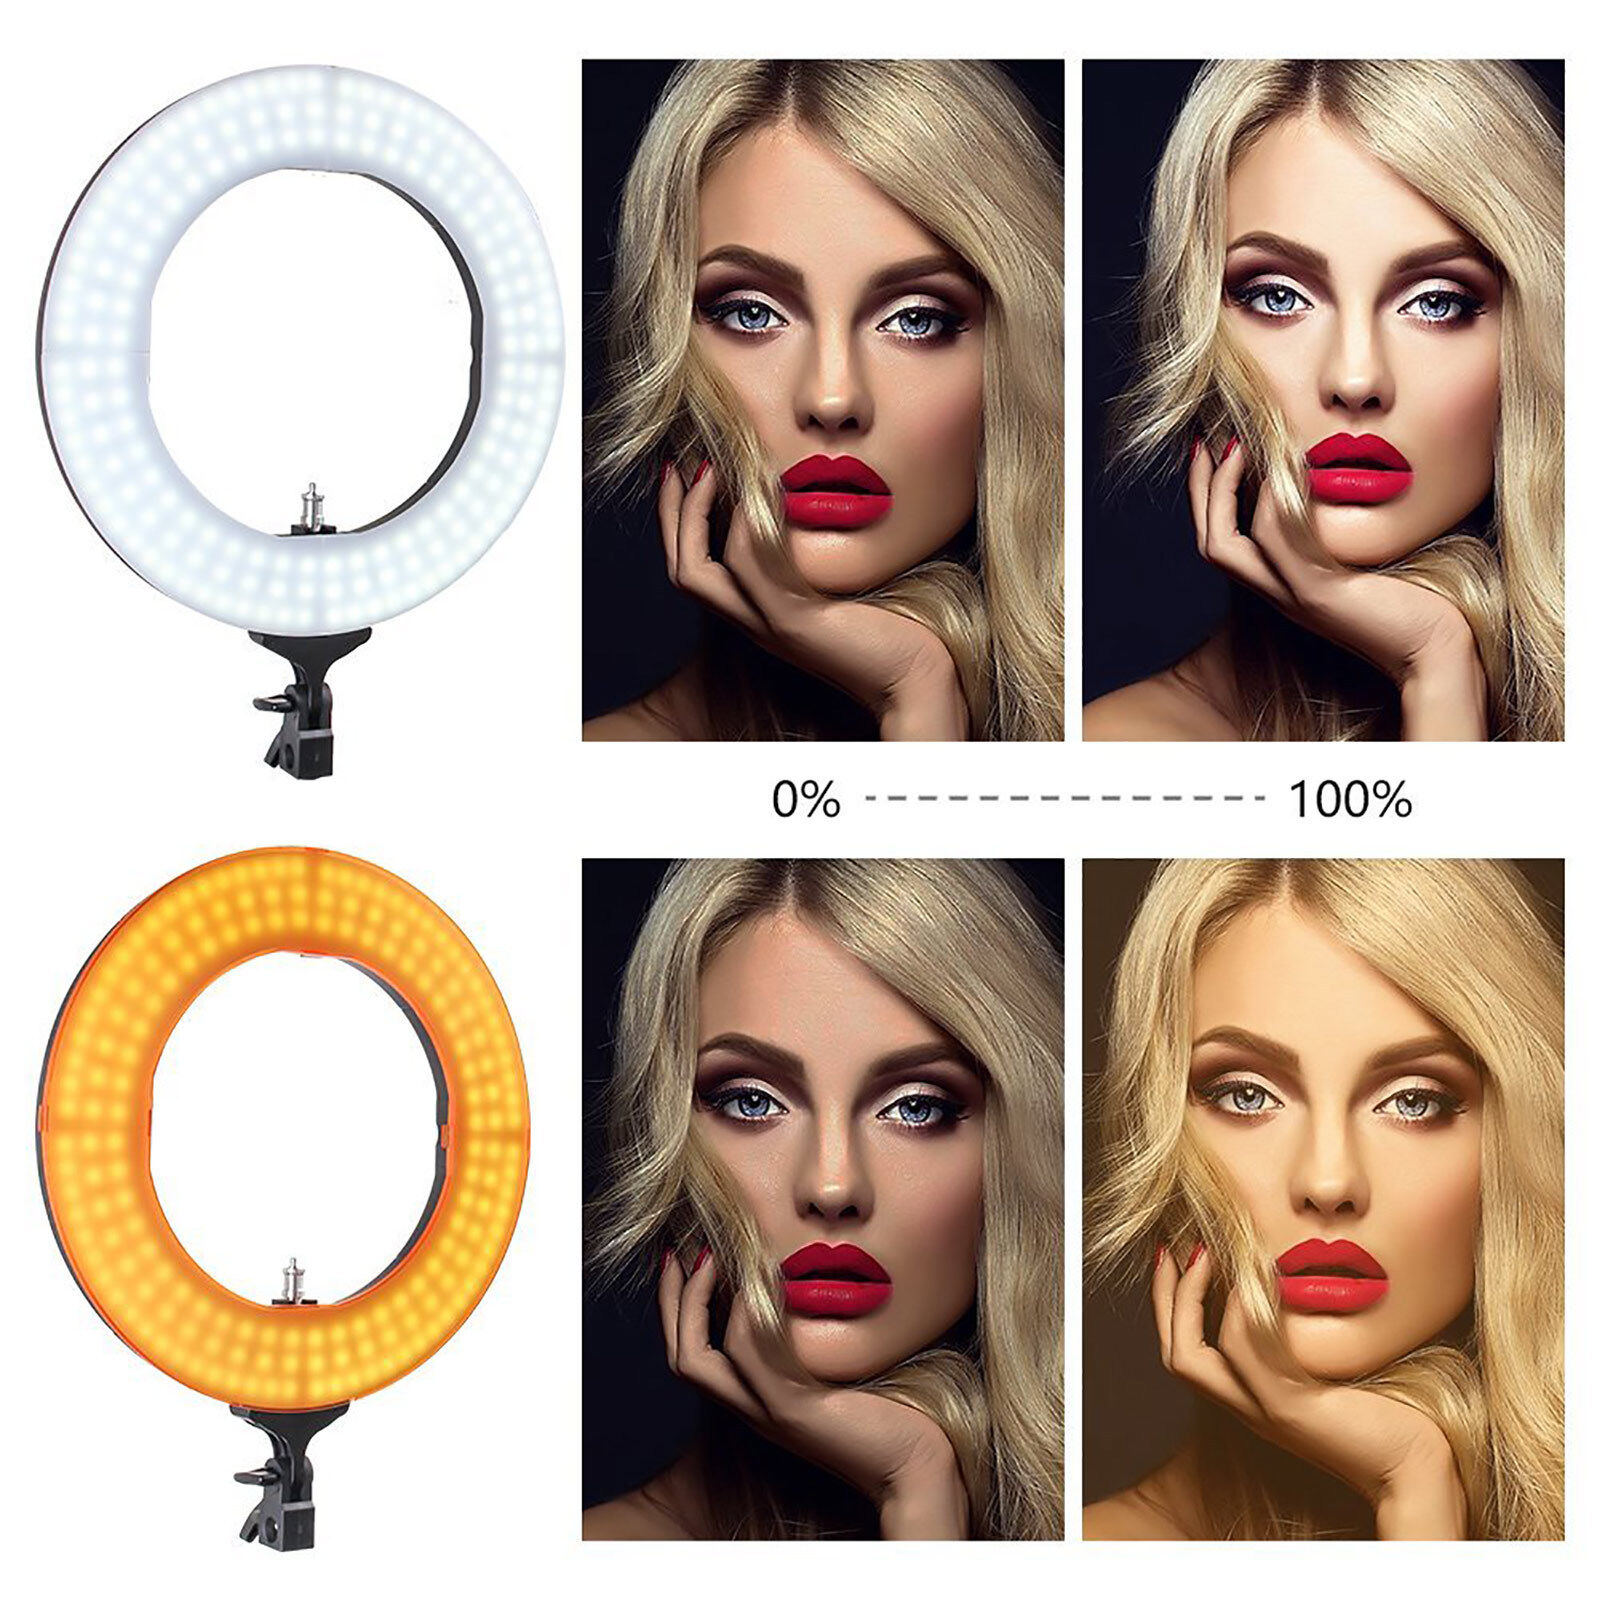 LED Ring Light with Stand 5500K Dimmable LED Lighting Kit Makeup Youtube Live